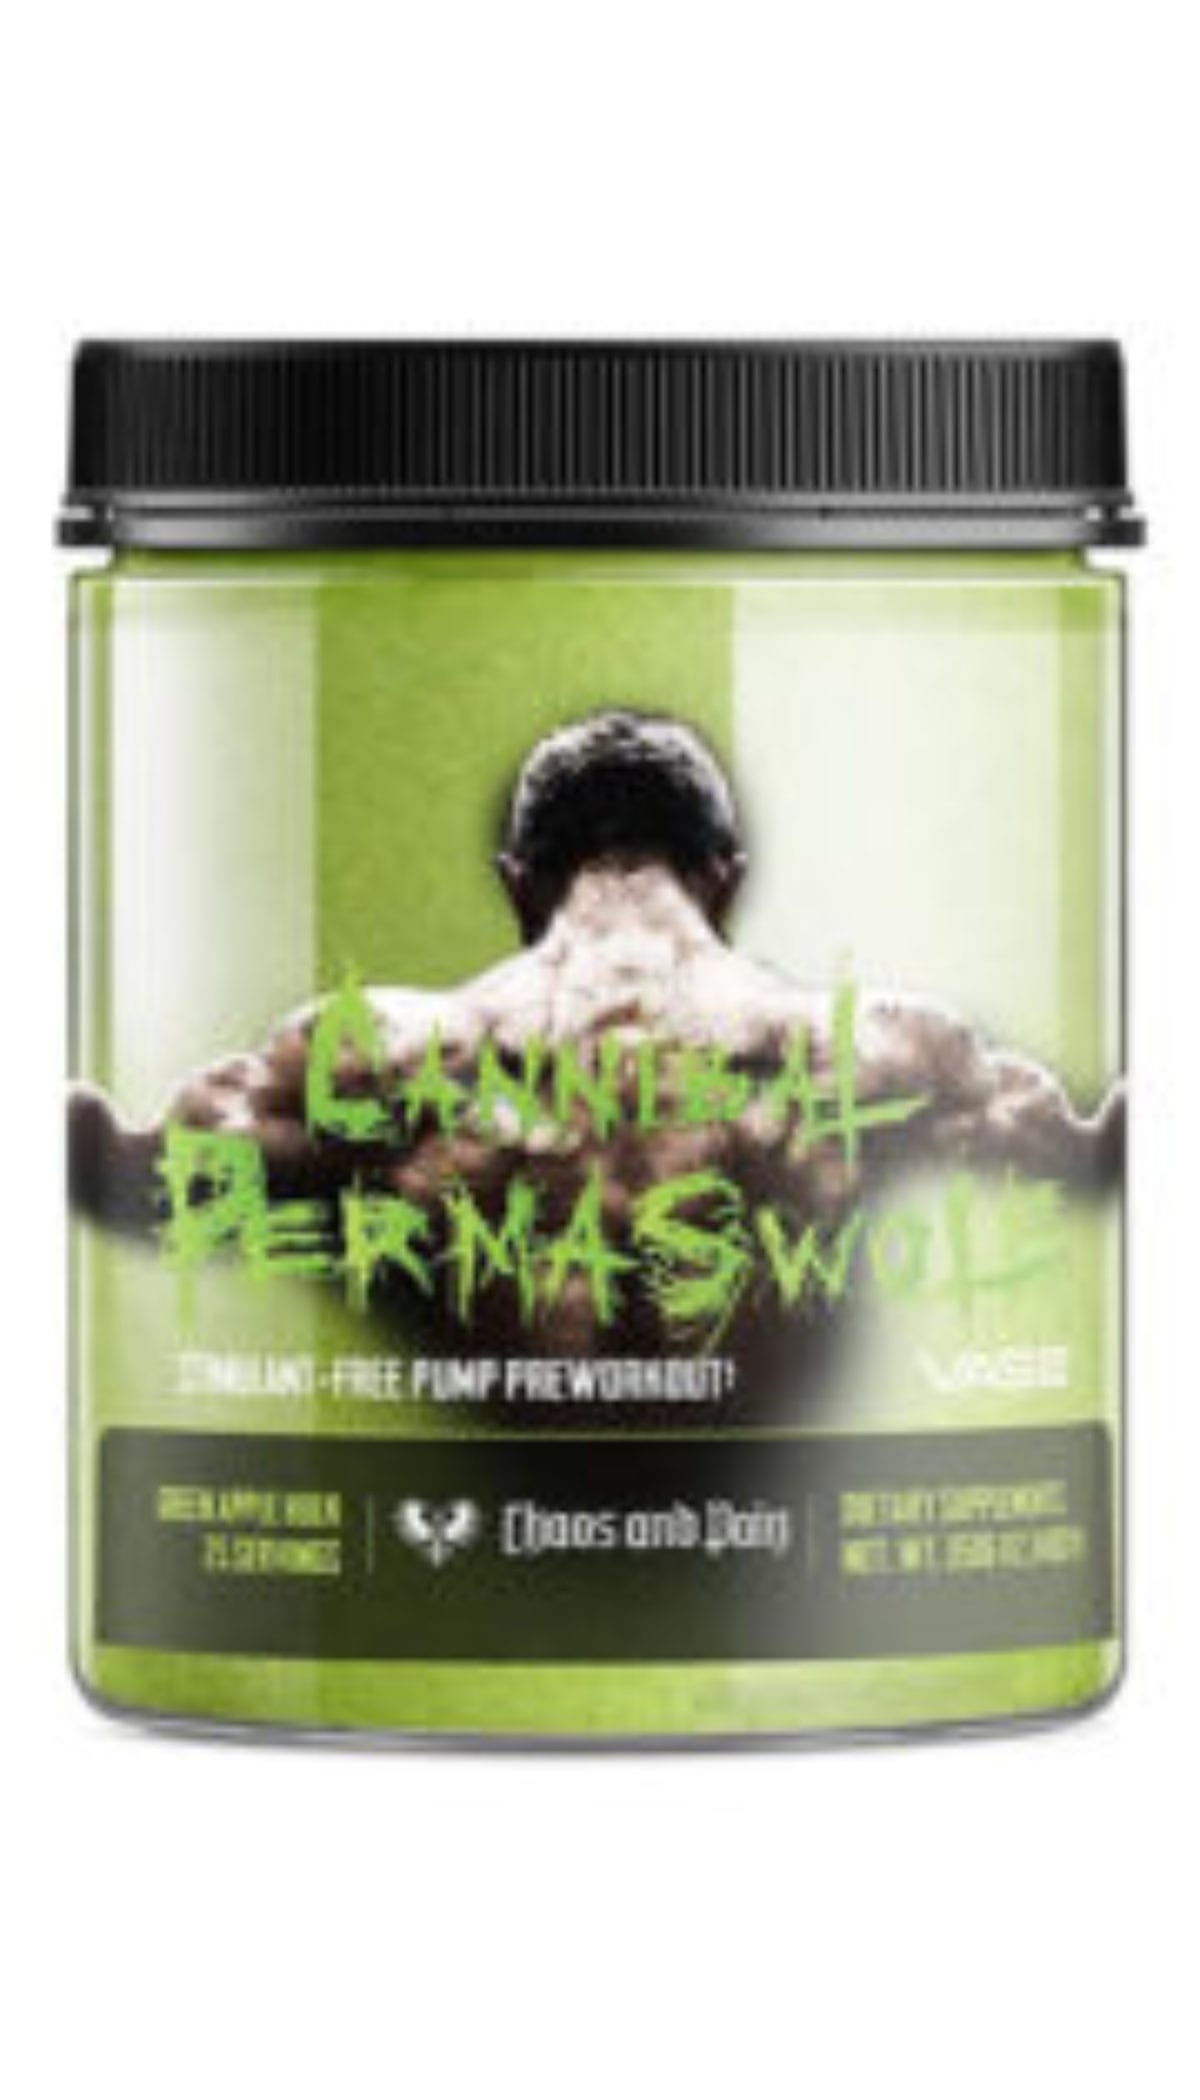 Cannibal-PermaSwole